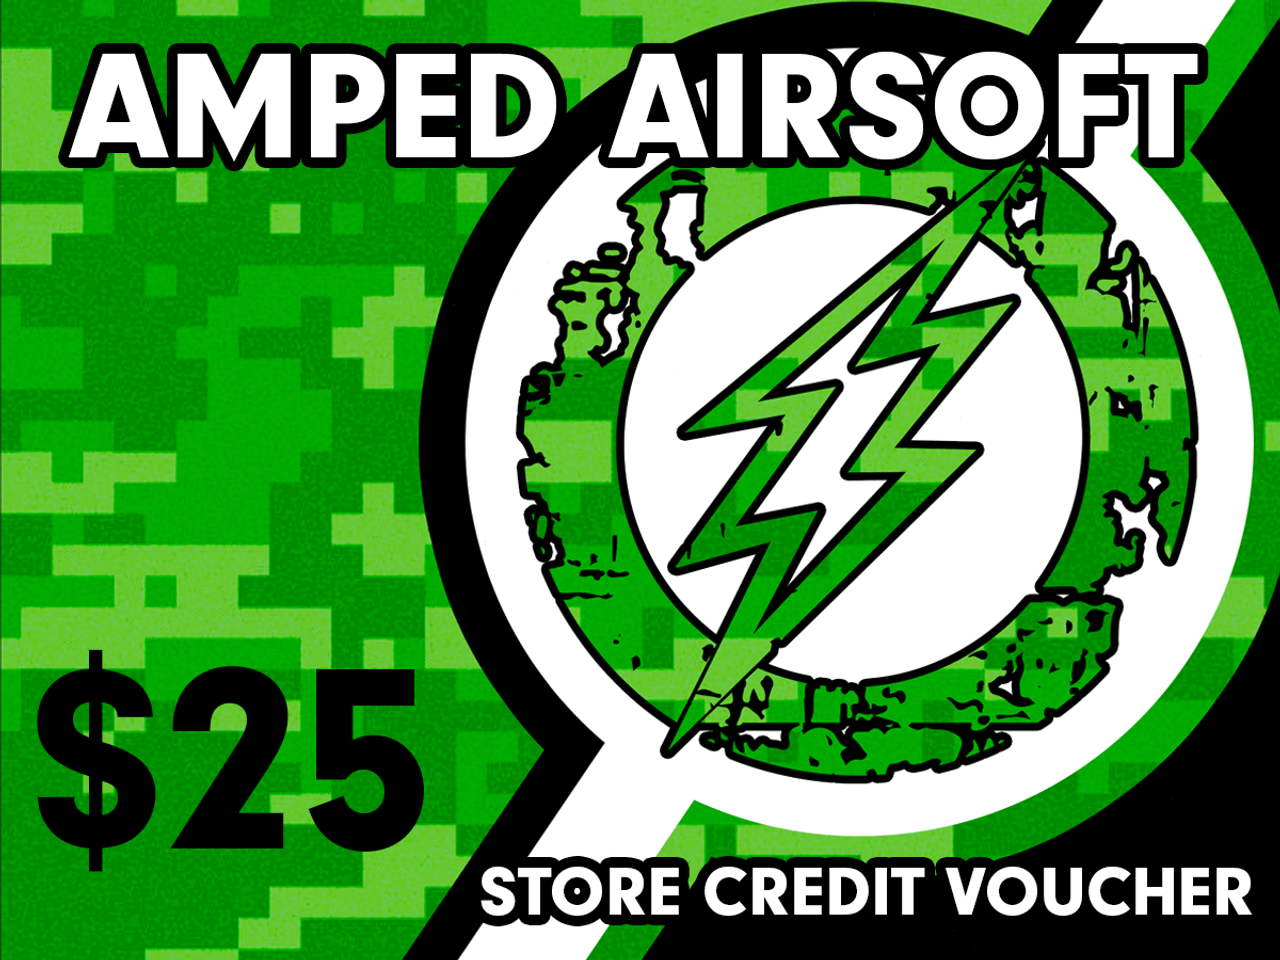 Amped Airsoft Gift Card! | $25.00